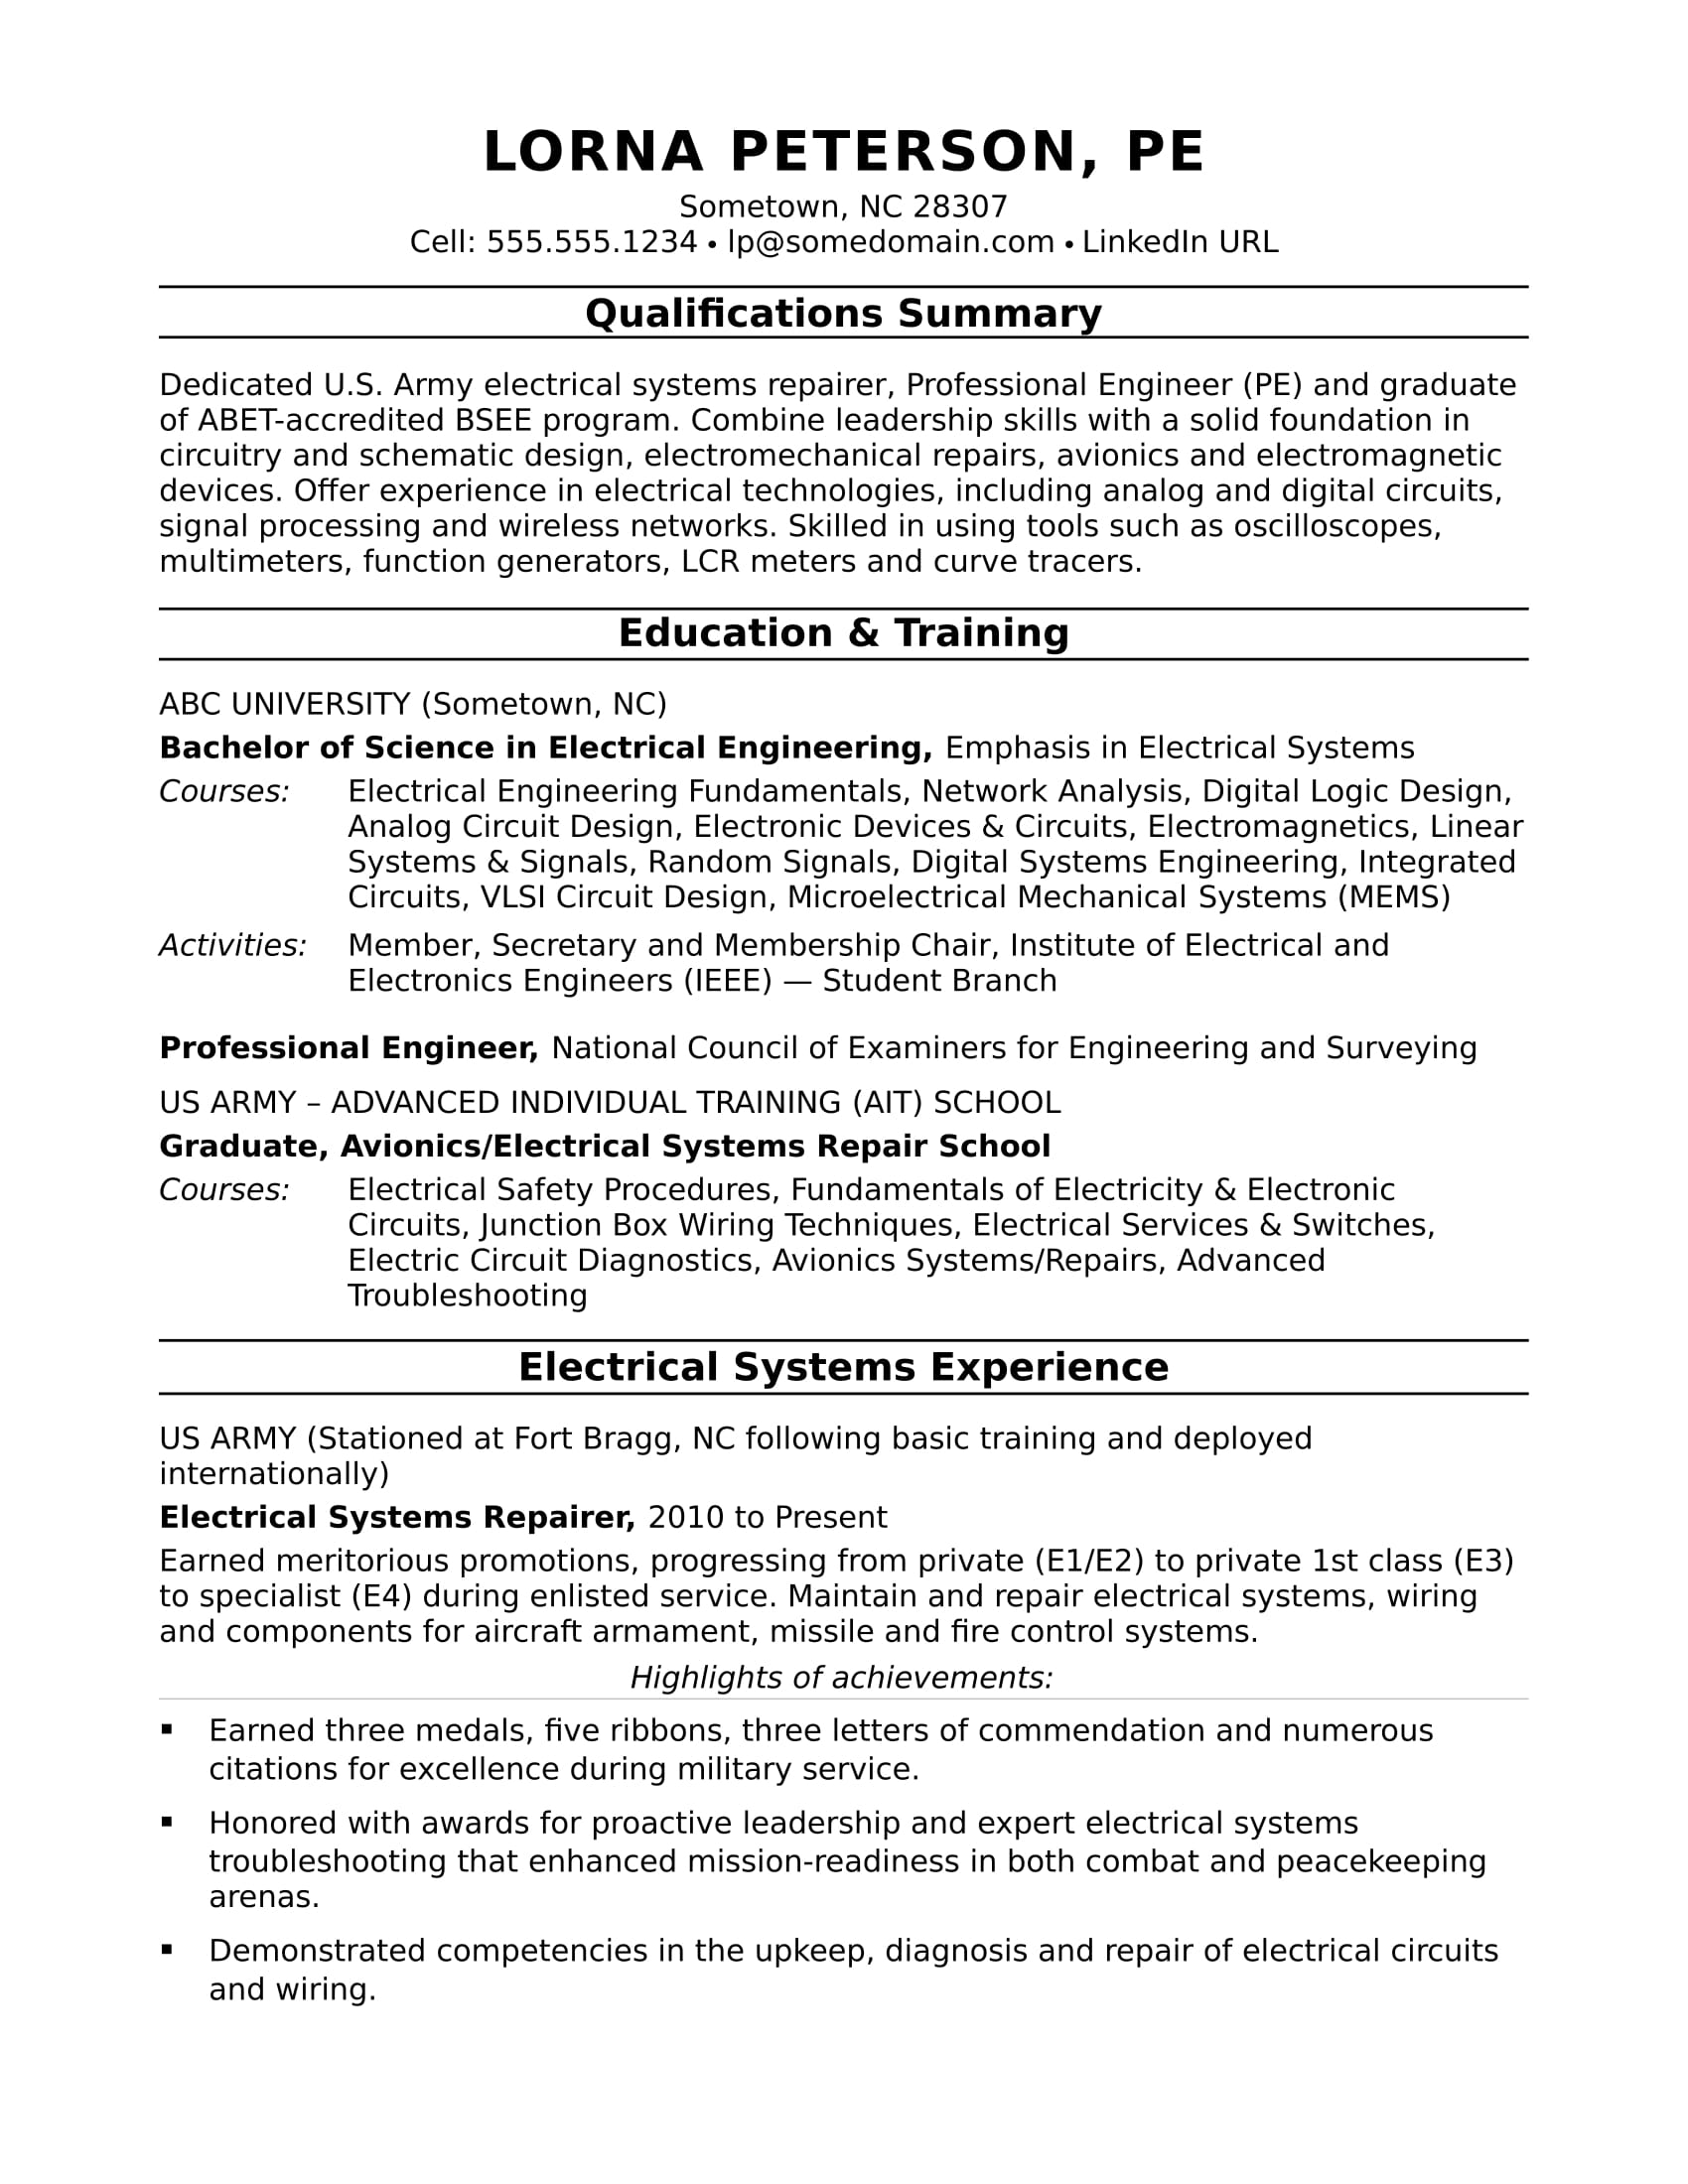 Sample Resume For A Midlevel Electrical Engineer  Network Analyst Resume